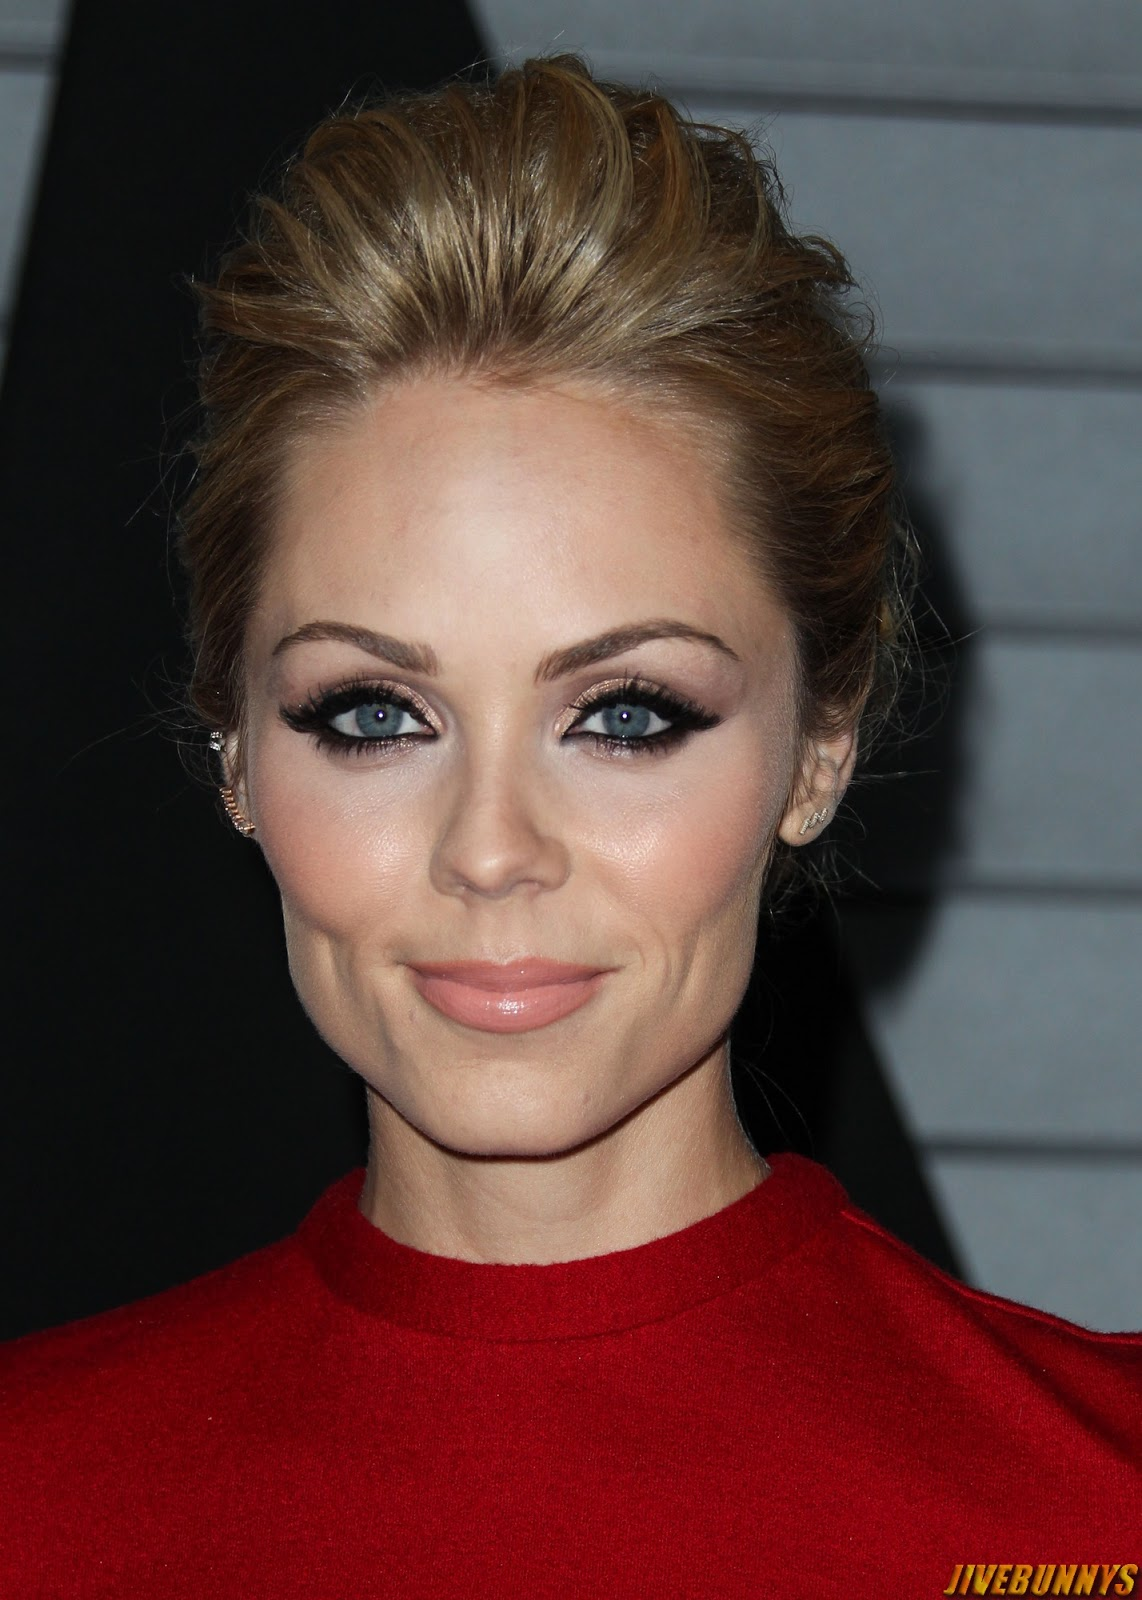 Laura Vandervoort Photos And Image Gallery 3-6985